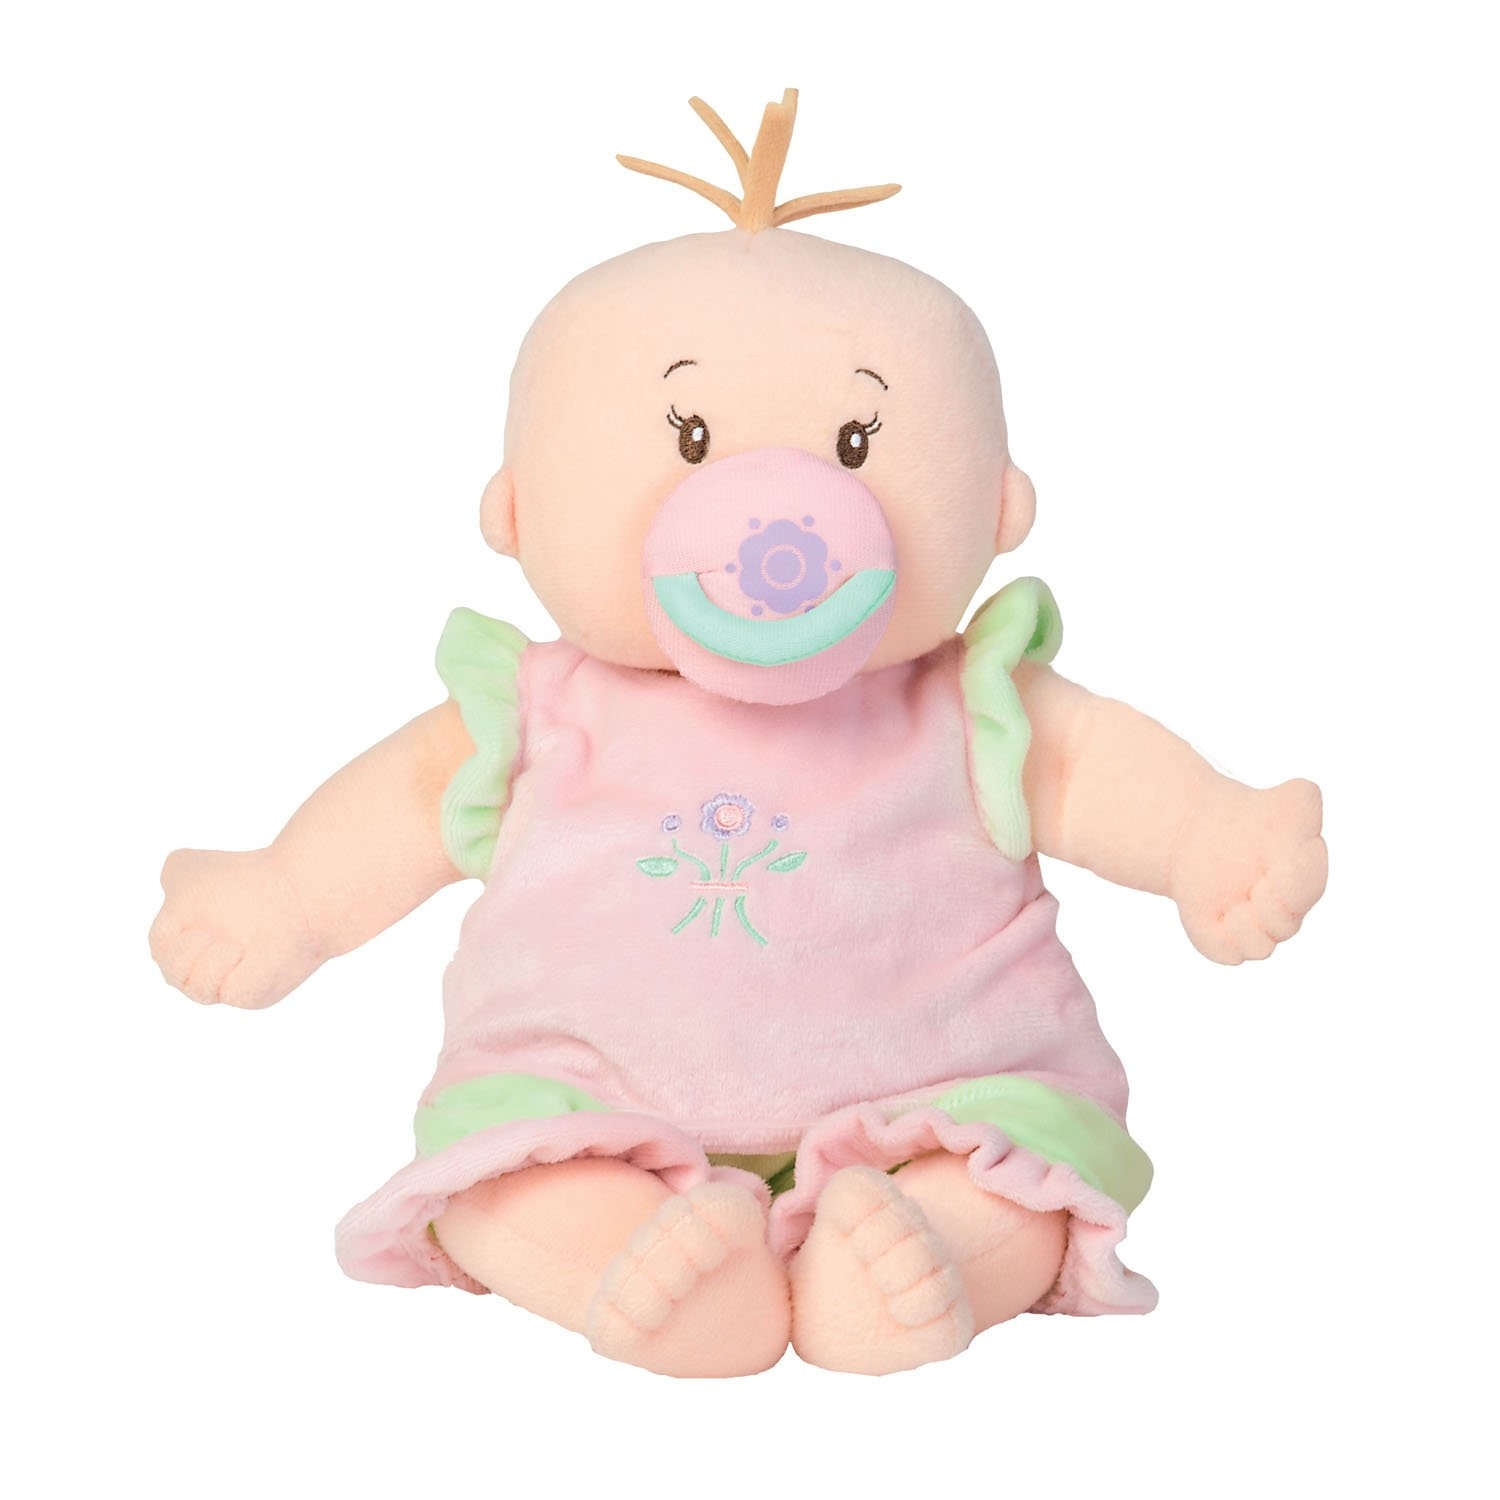 Top 15 Best Baby Dolls for 1 Year Olds (2020 Updated) 1